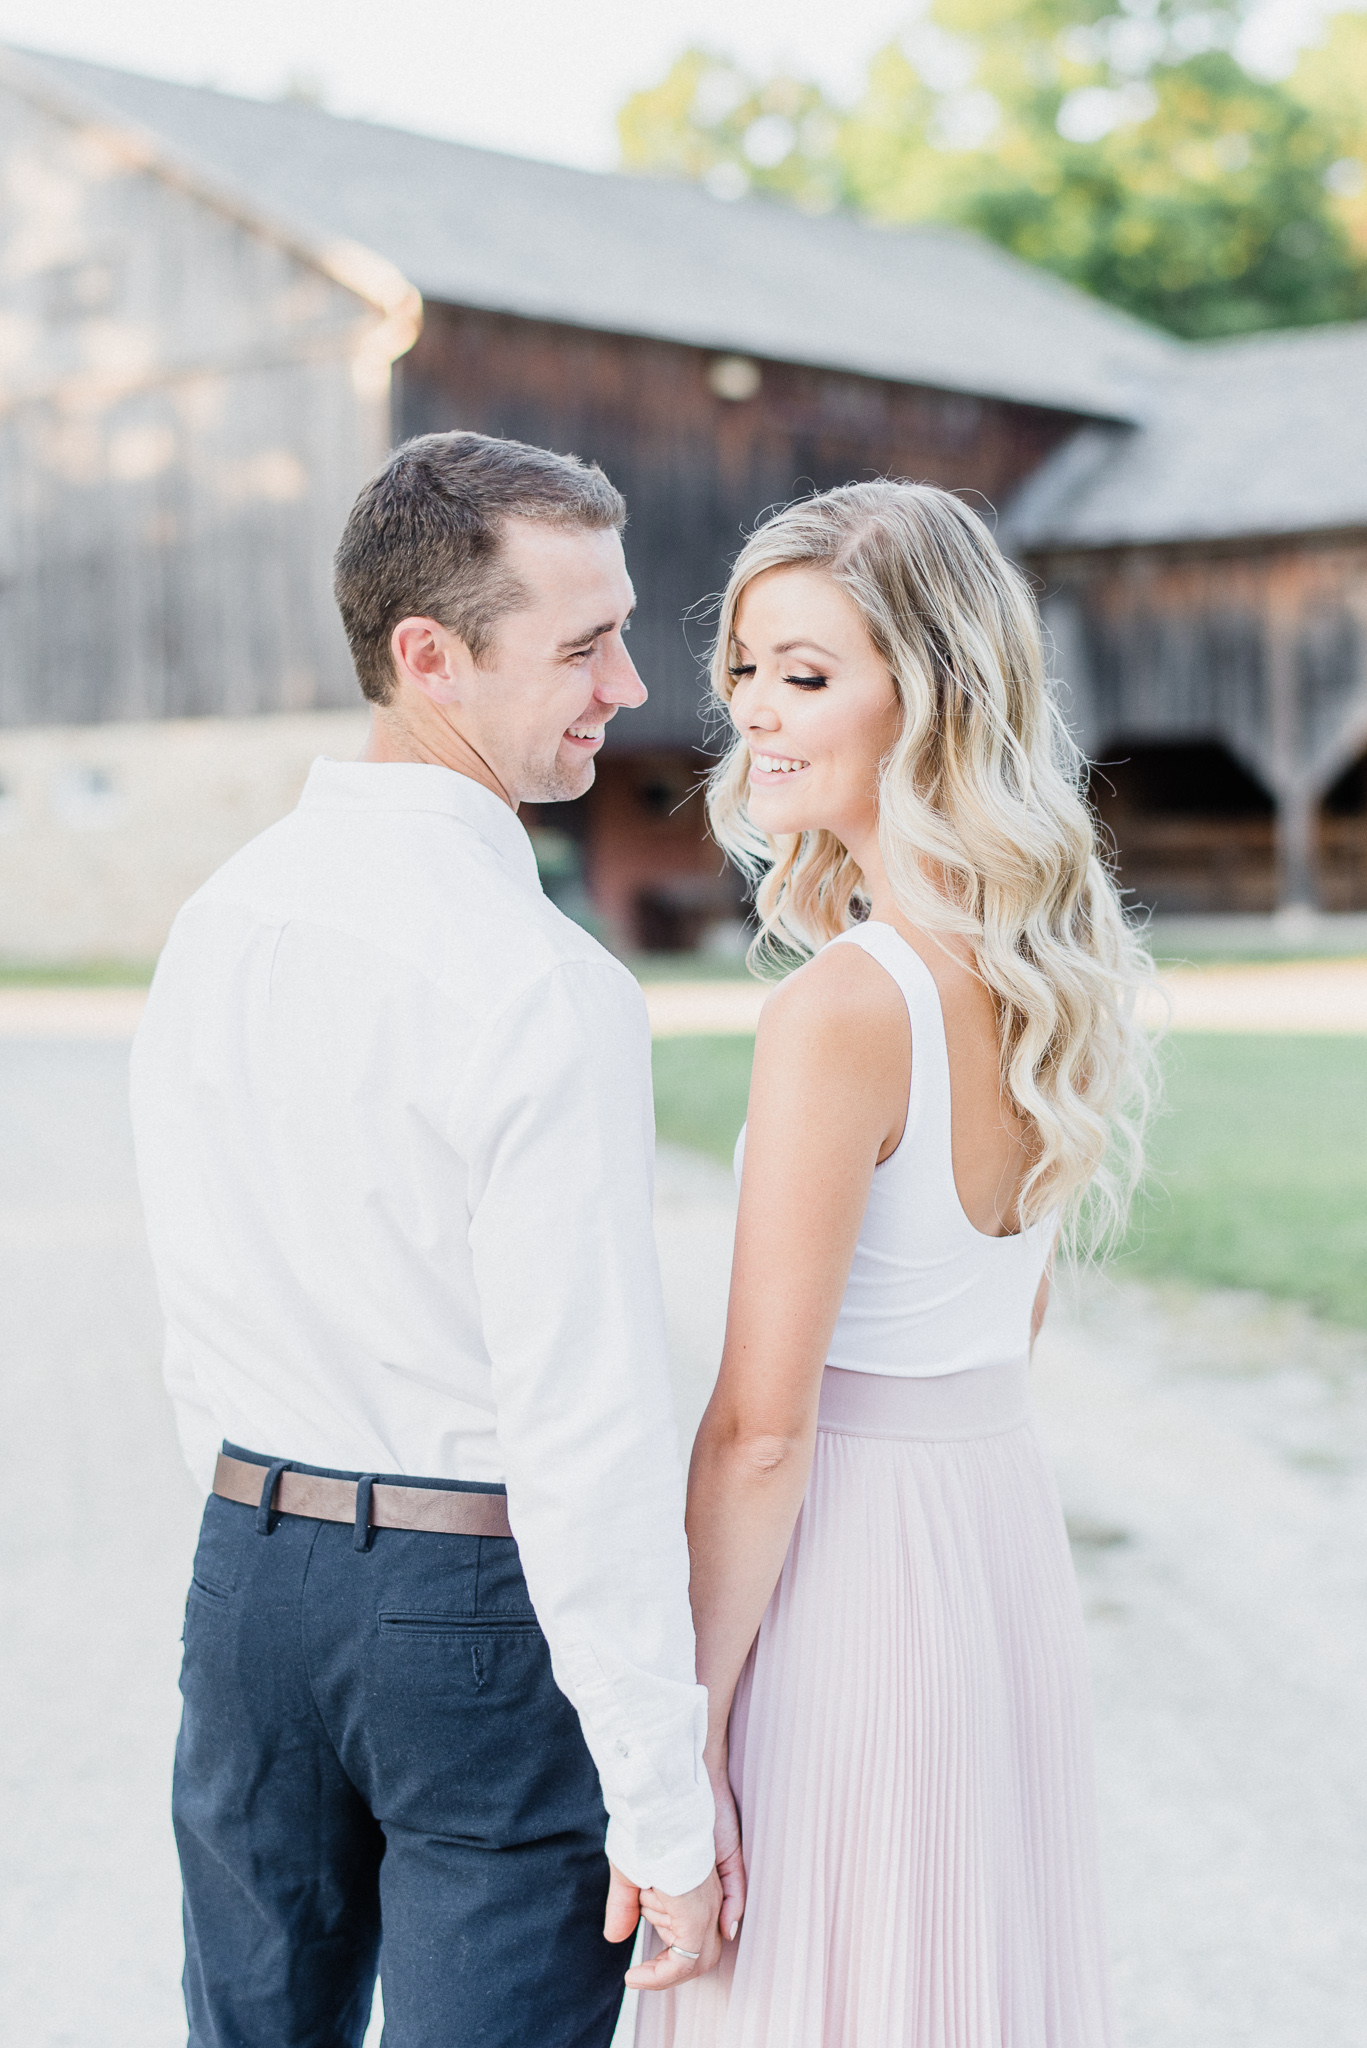 Bronte Creek Engagement Session by Jenn Kavanagh Photography